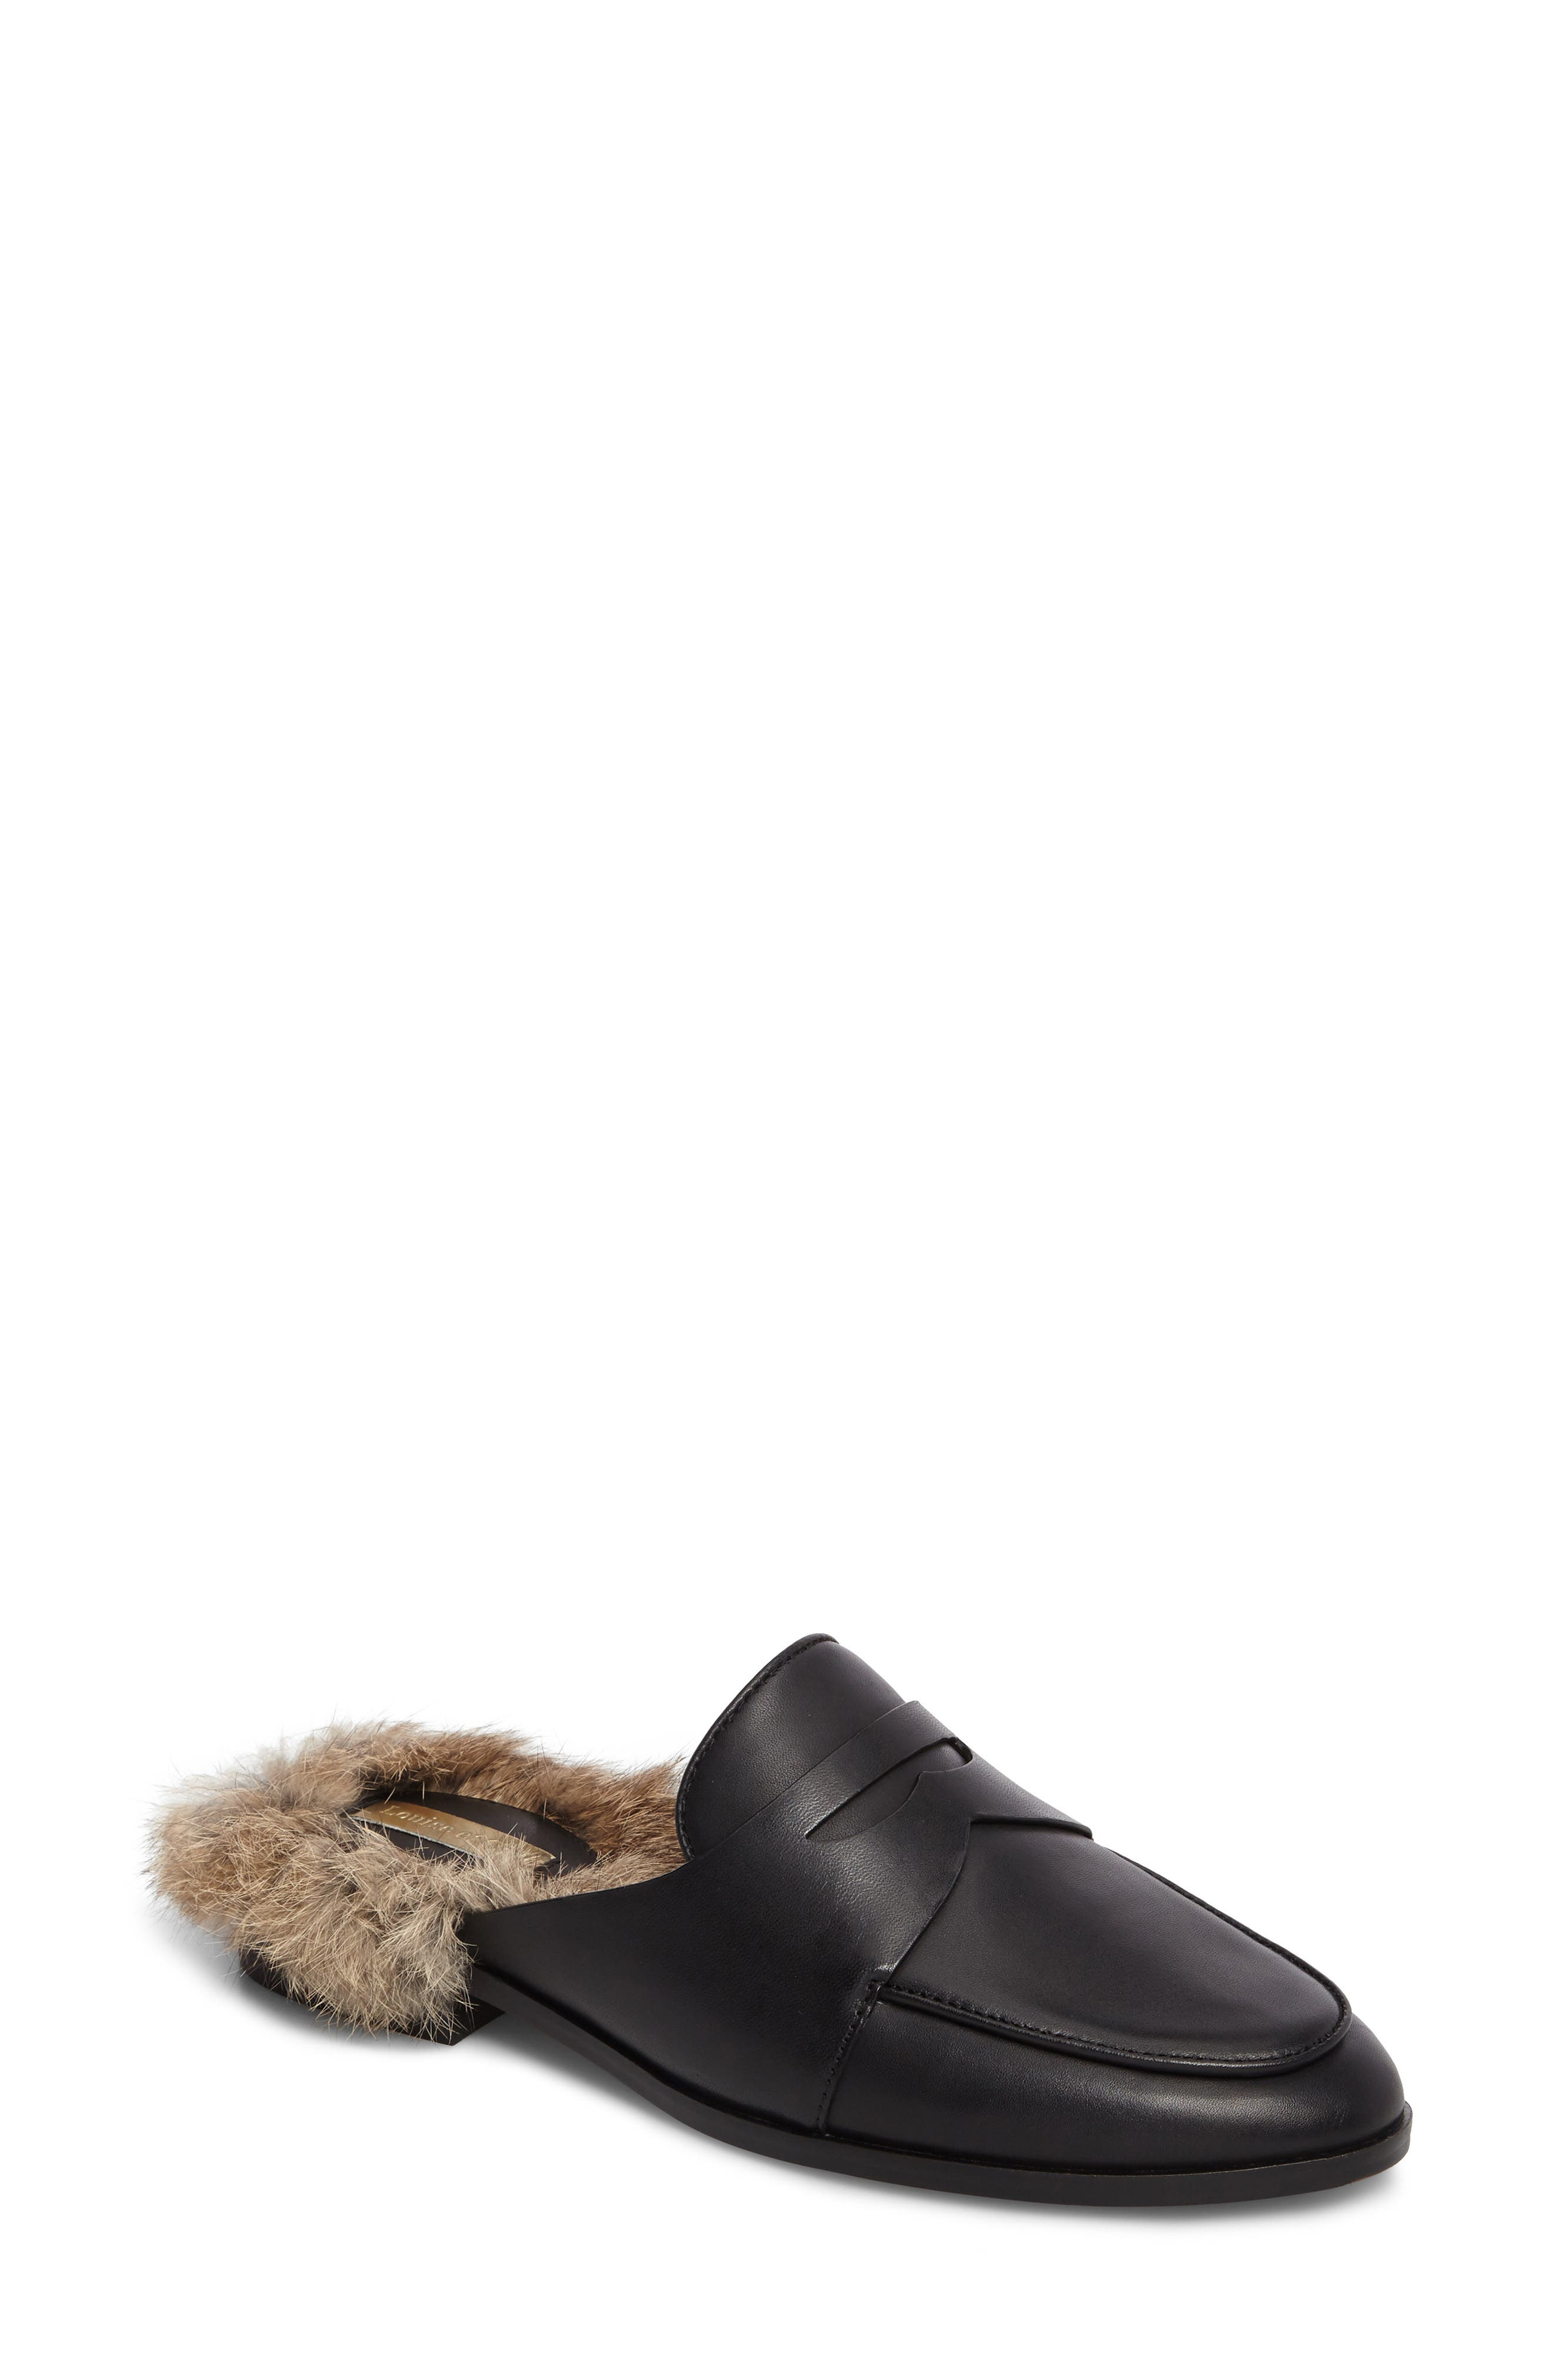 Dugan II Genuine Rabbit Fur Mule,                         Main,                         color, Black Leather